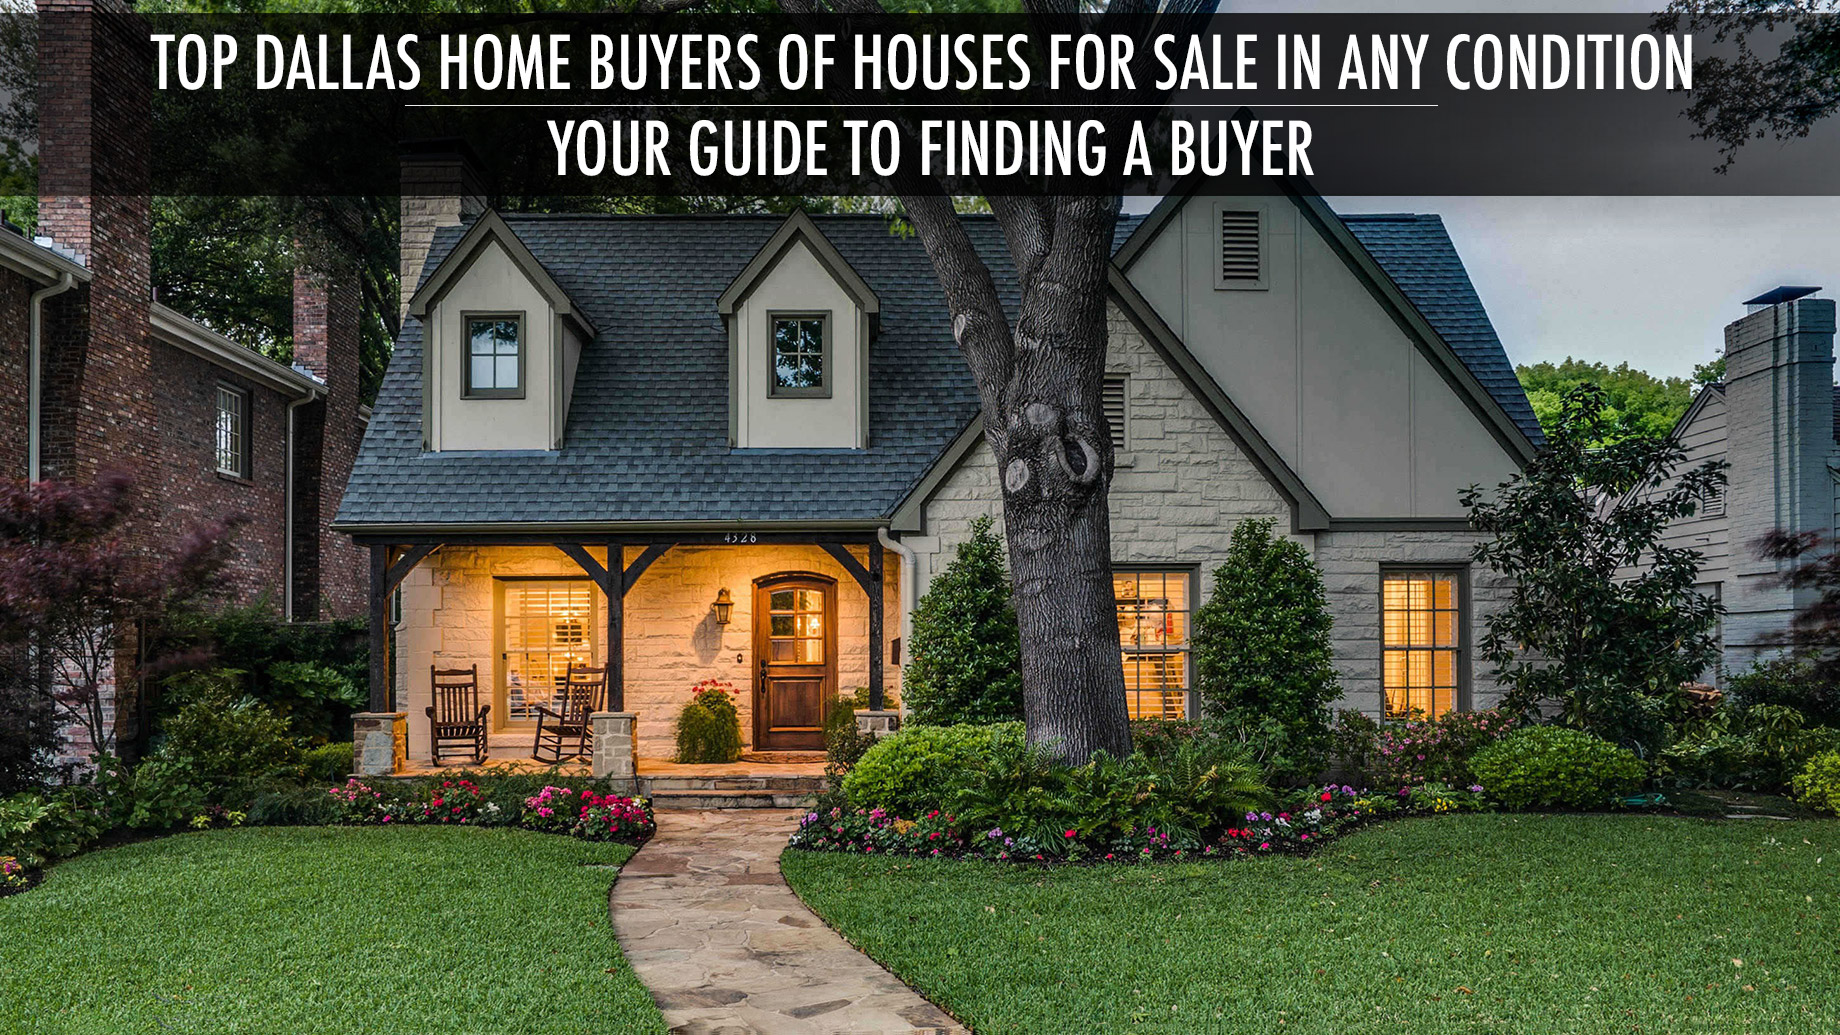 Top Dallas Home Buyers of Houses For Sale In Any Condition - Your Guide To Finding A Buyer